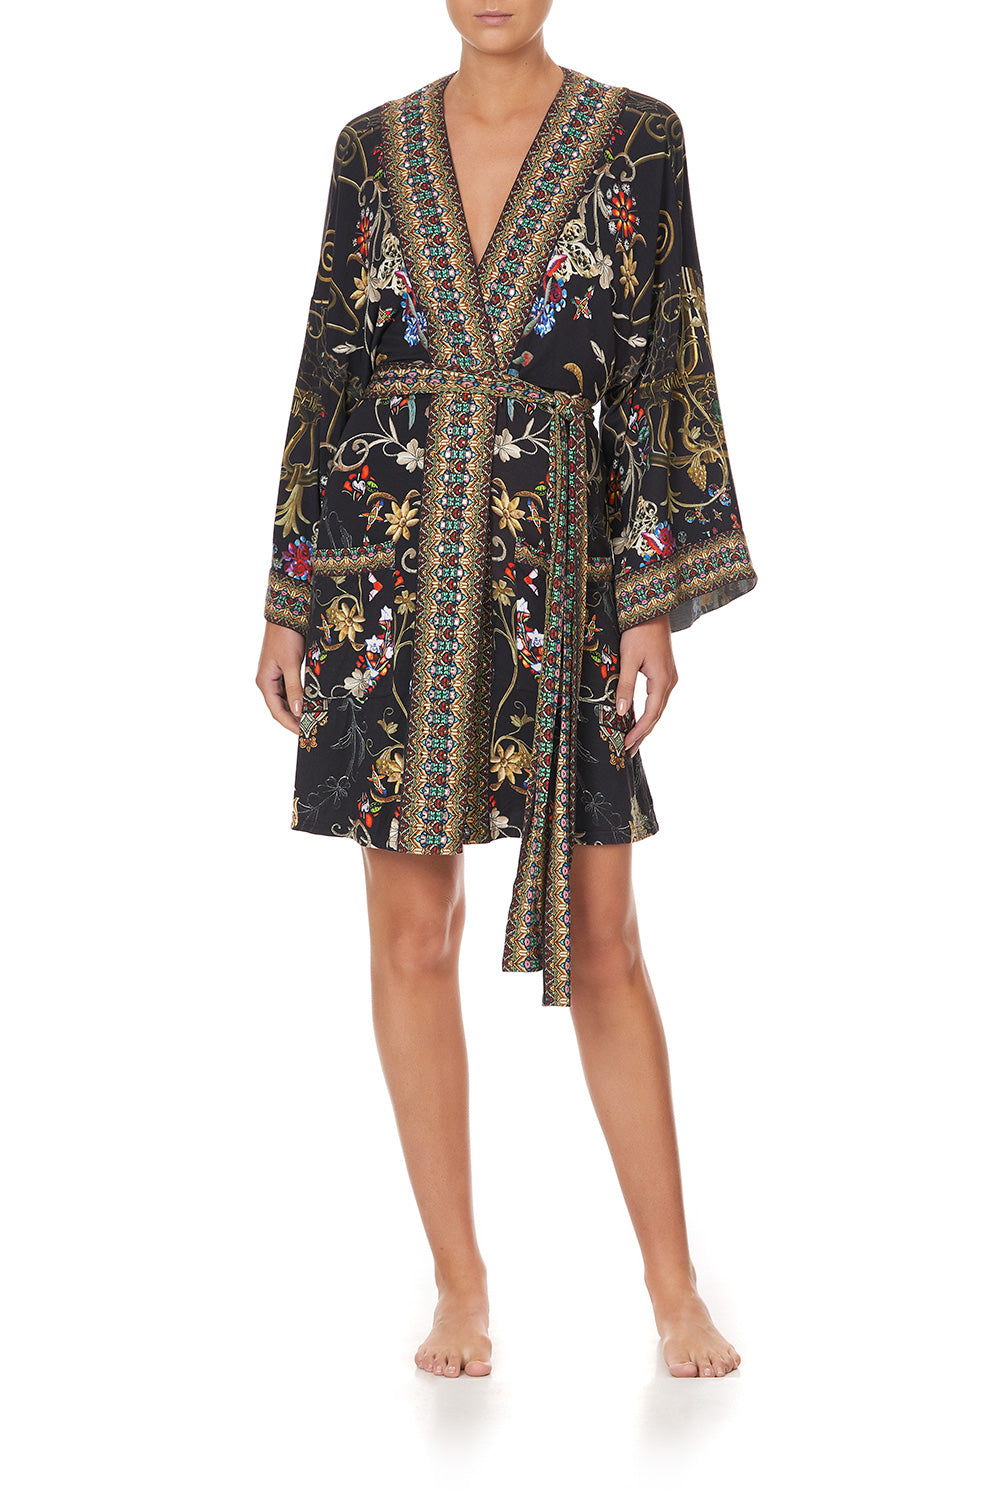 LOUNGE KIMONO WITH TIE BELT DANCING IN THE DARK